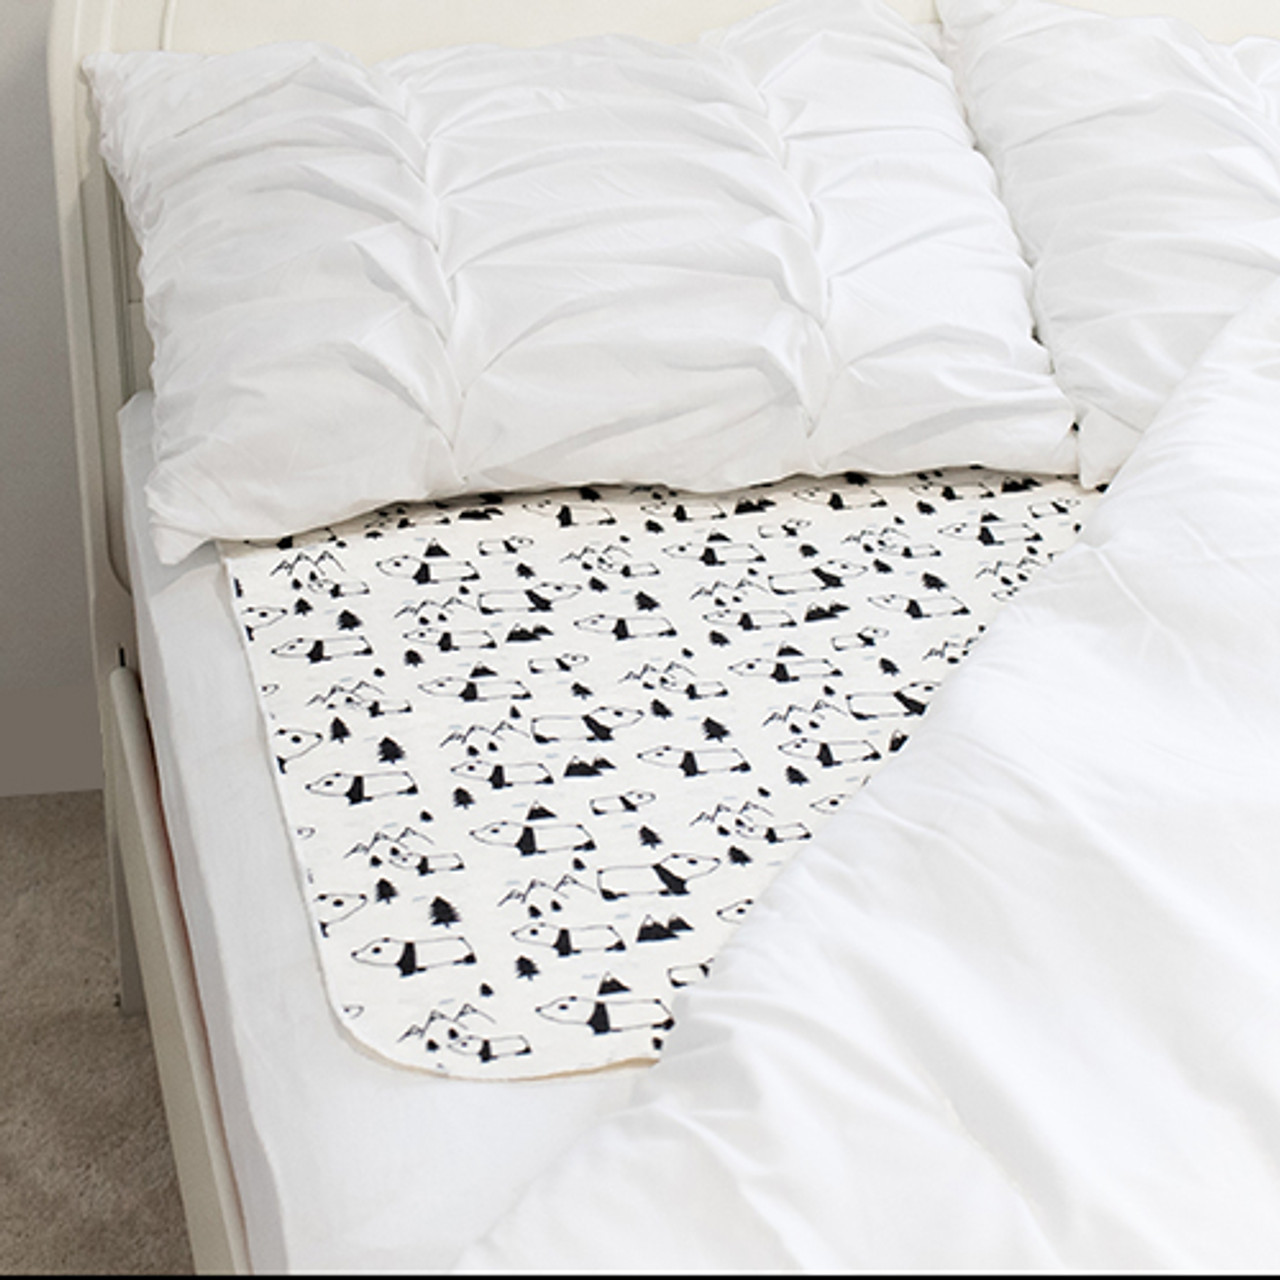 Waterproof Mattress Pad by Smart Bottoms